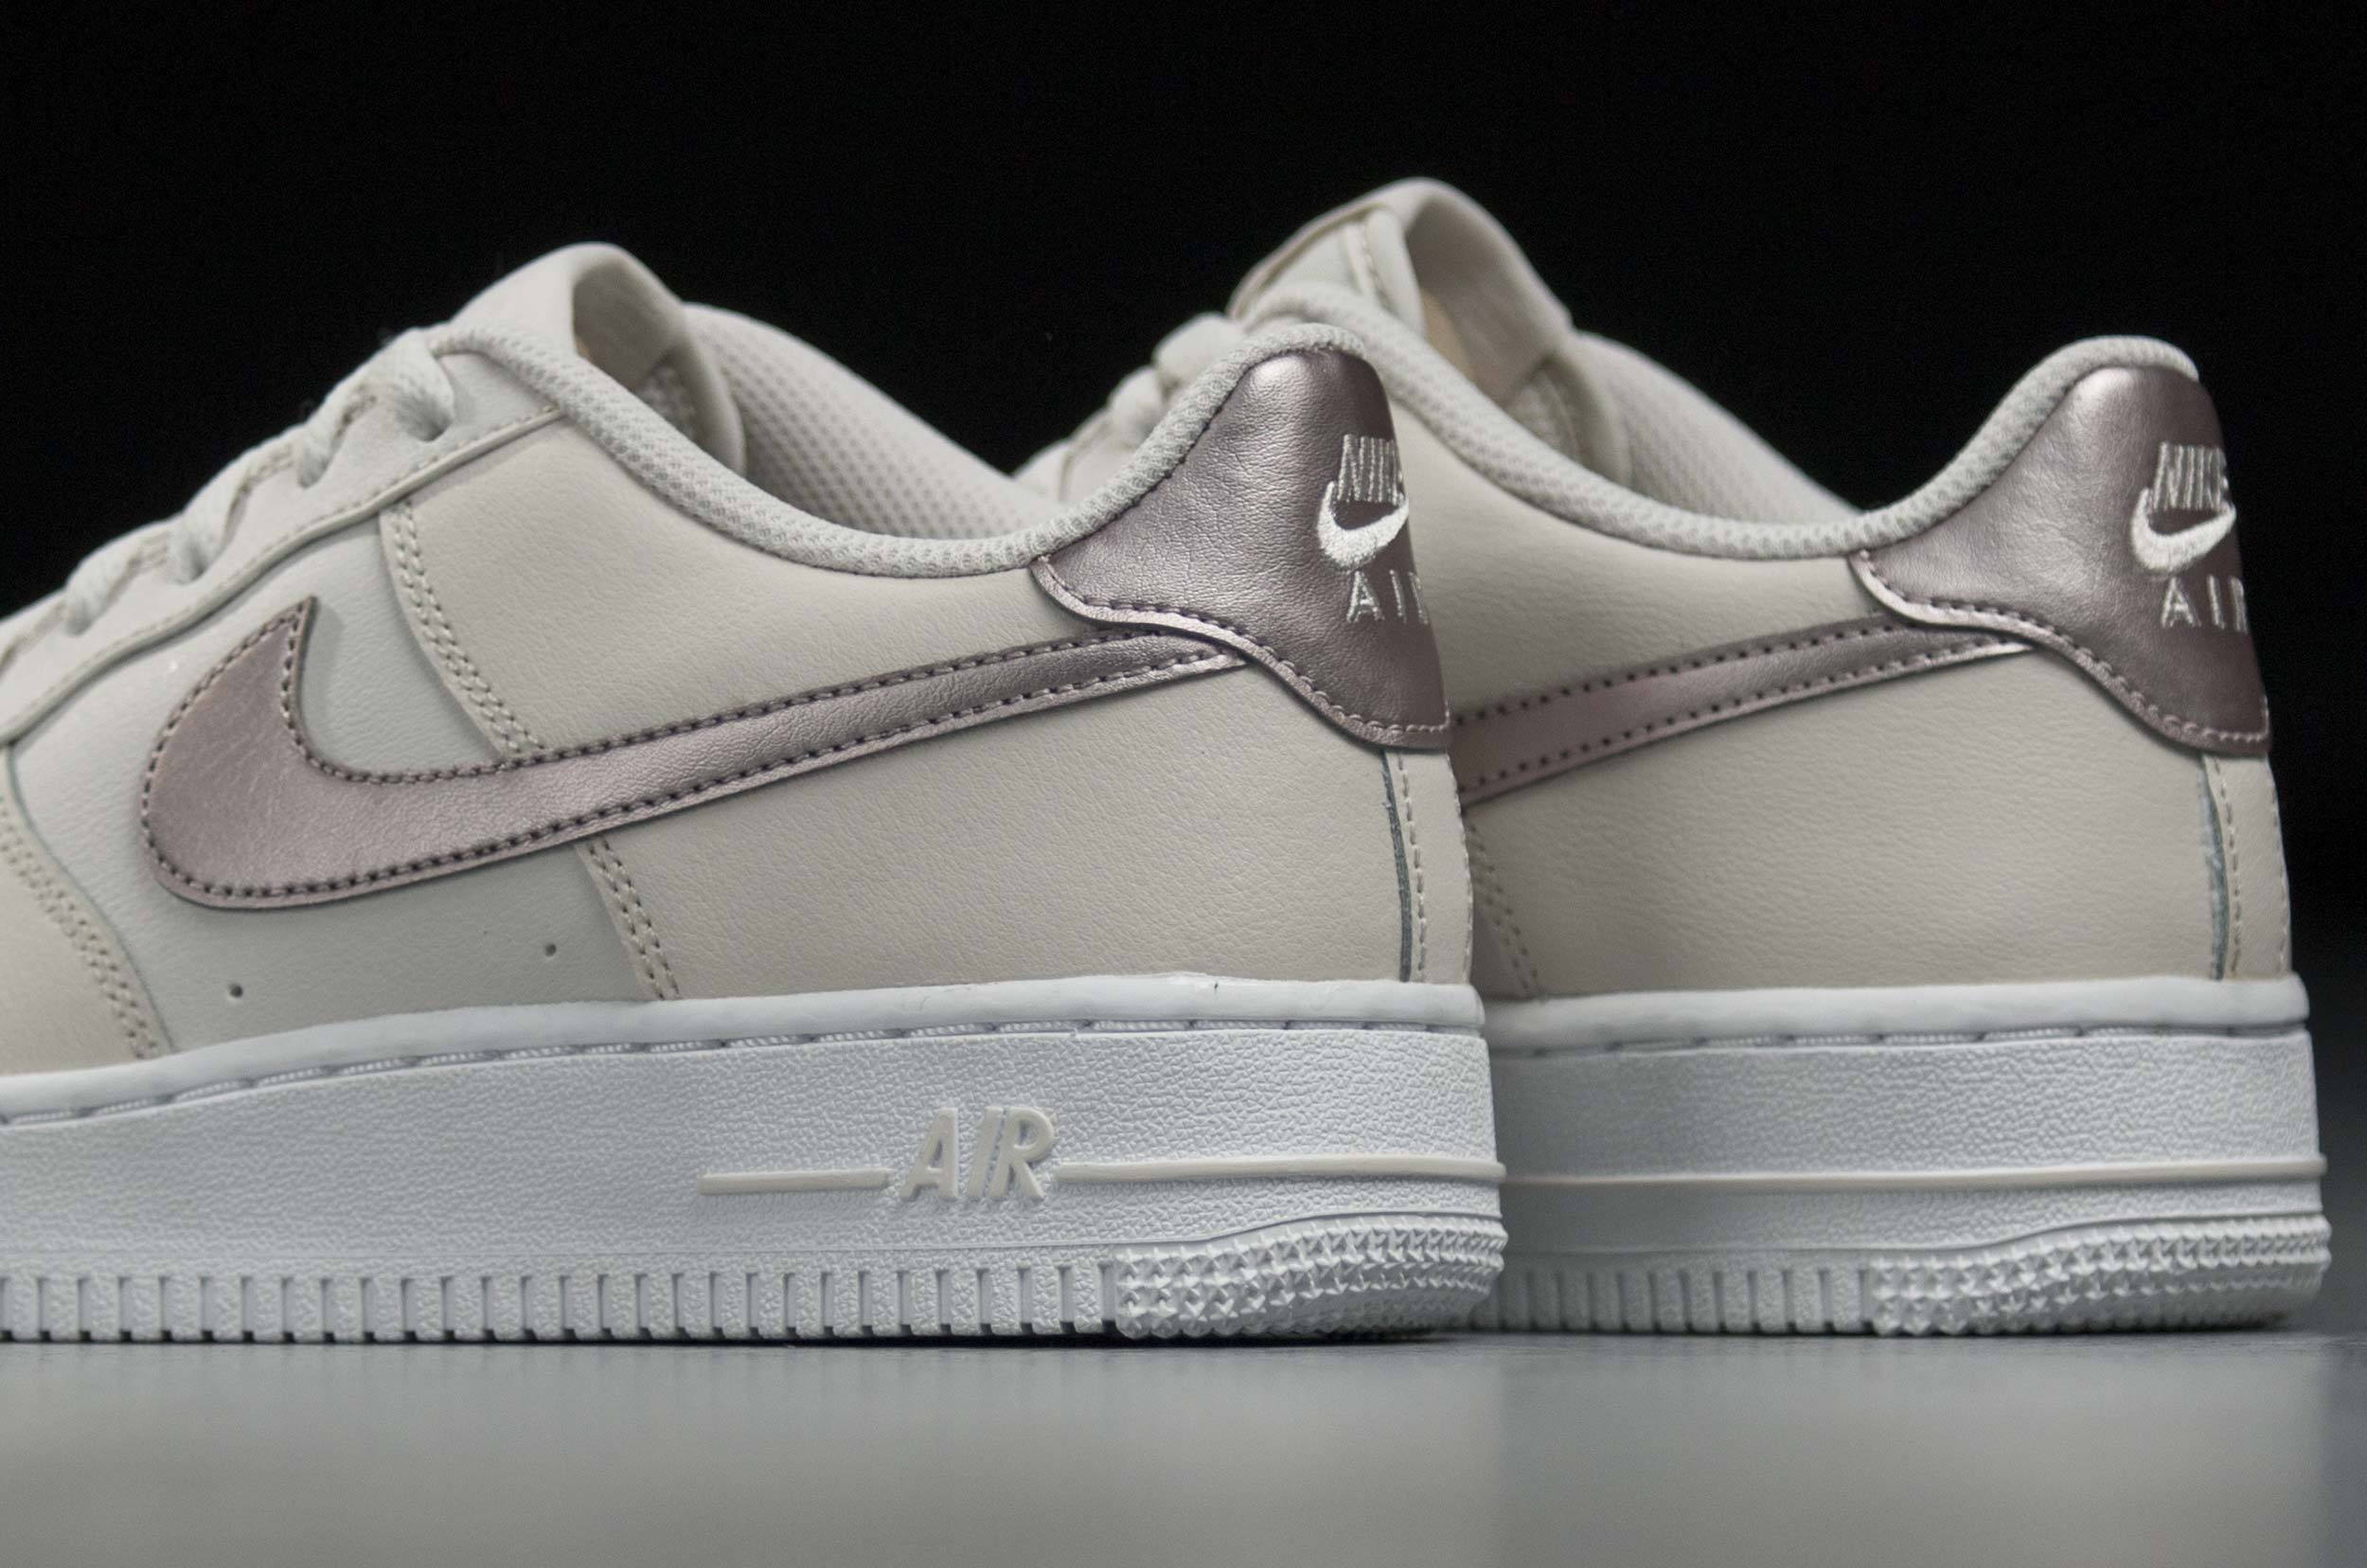 NIKE AIR FORCE 1 314219-021 Εκρού